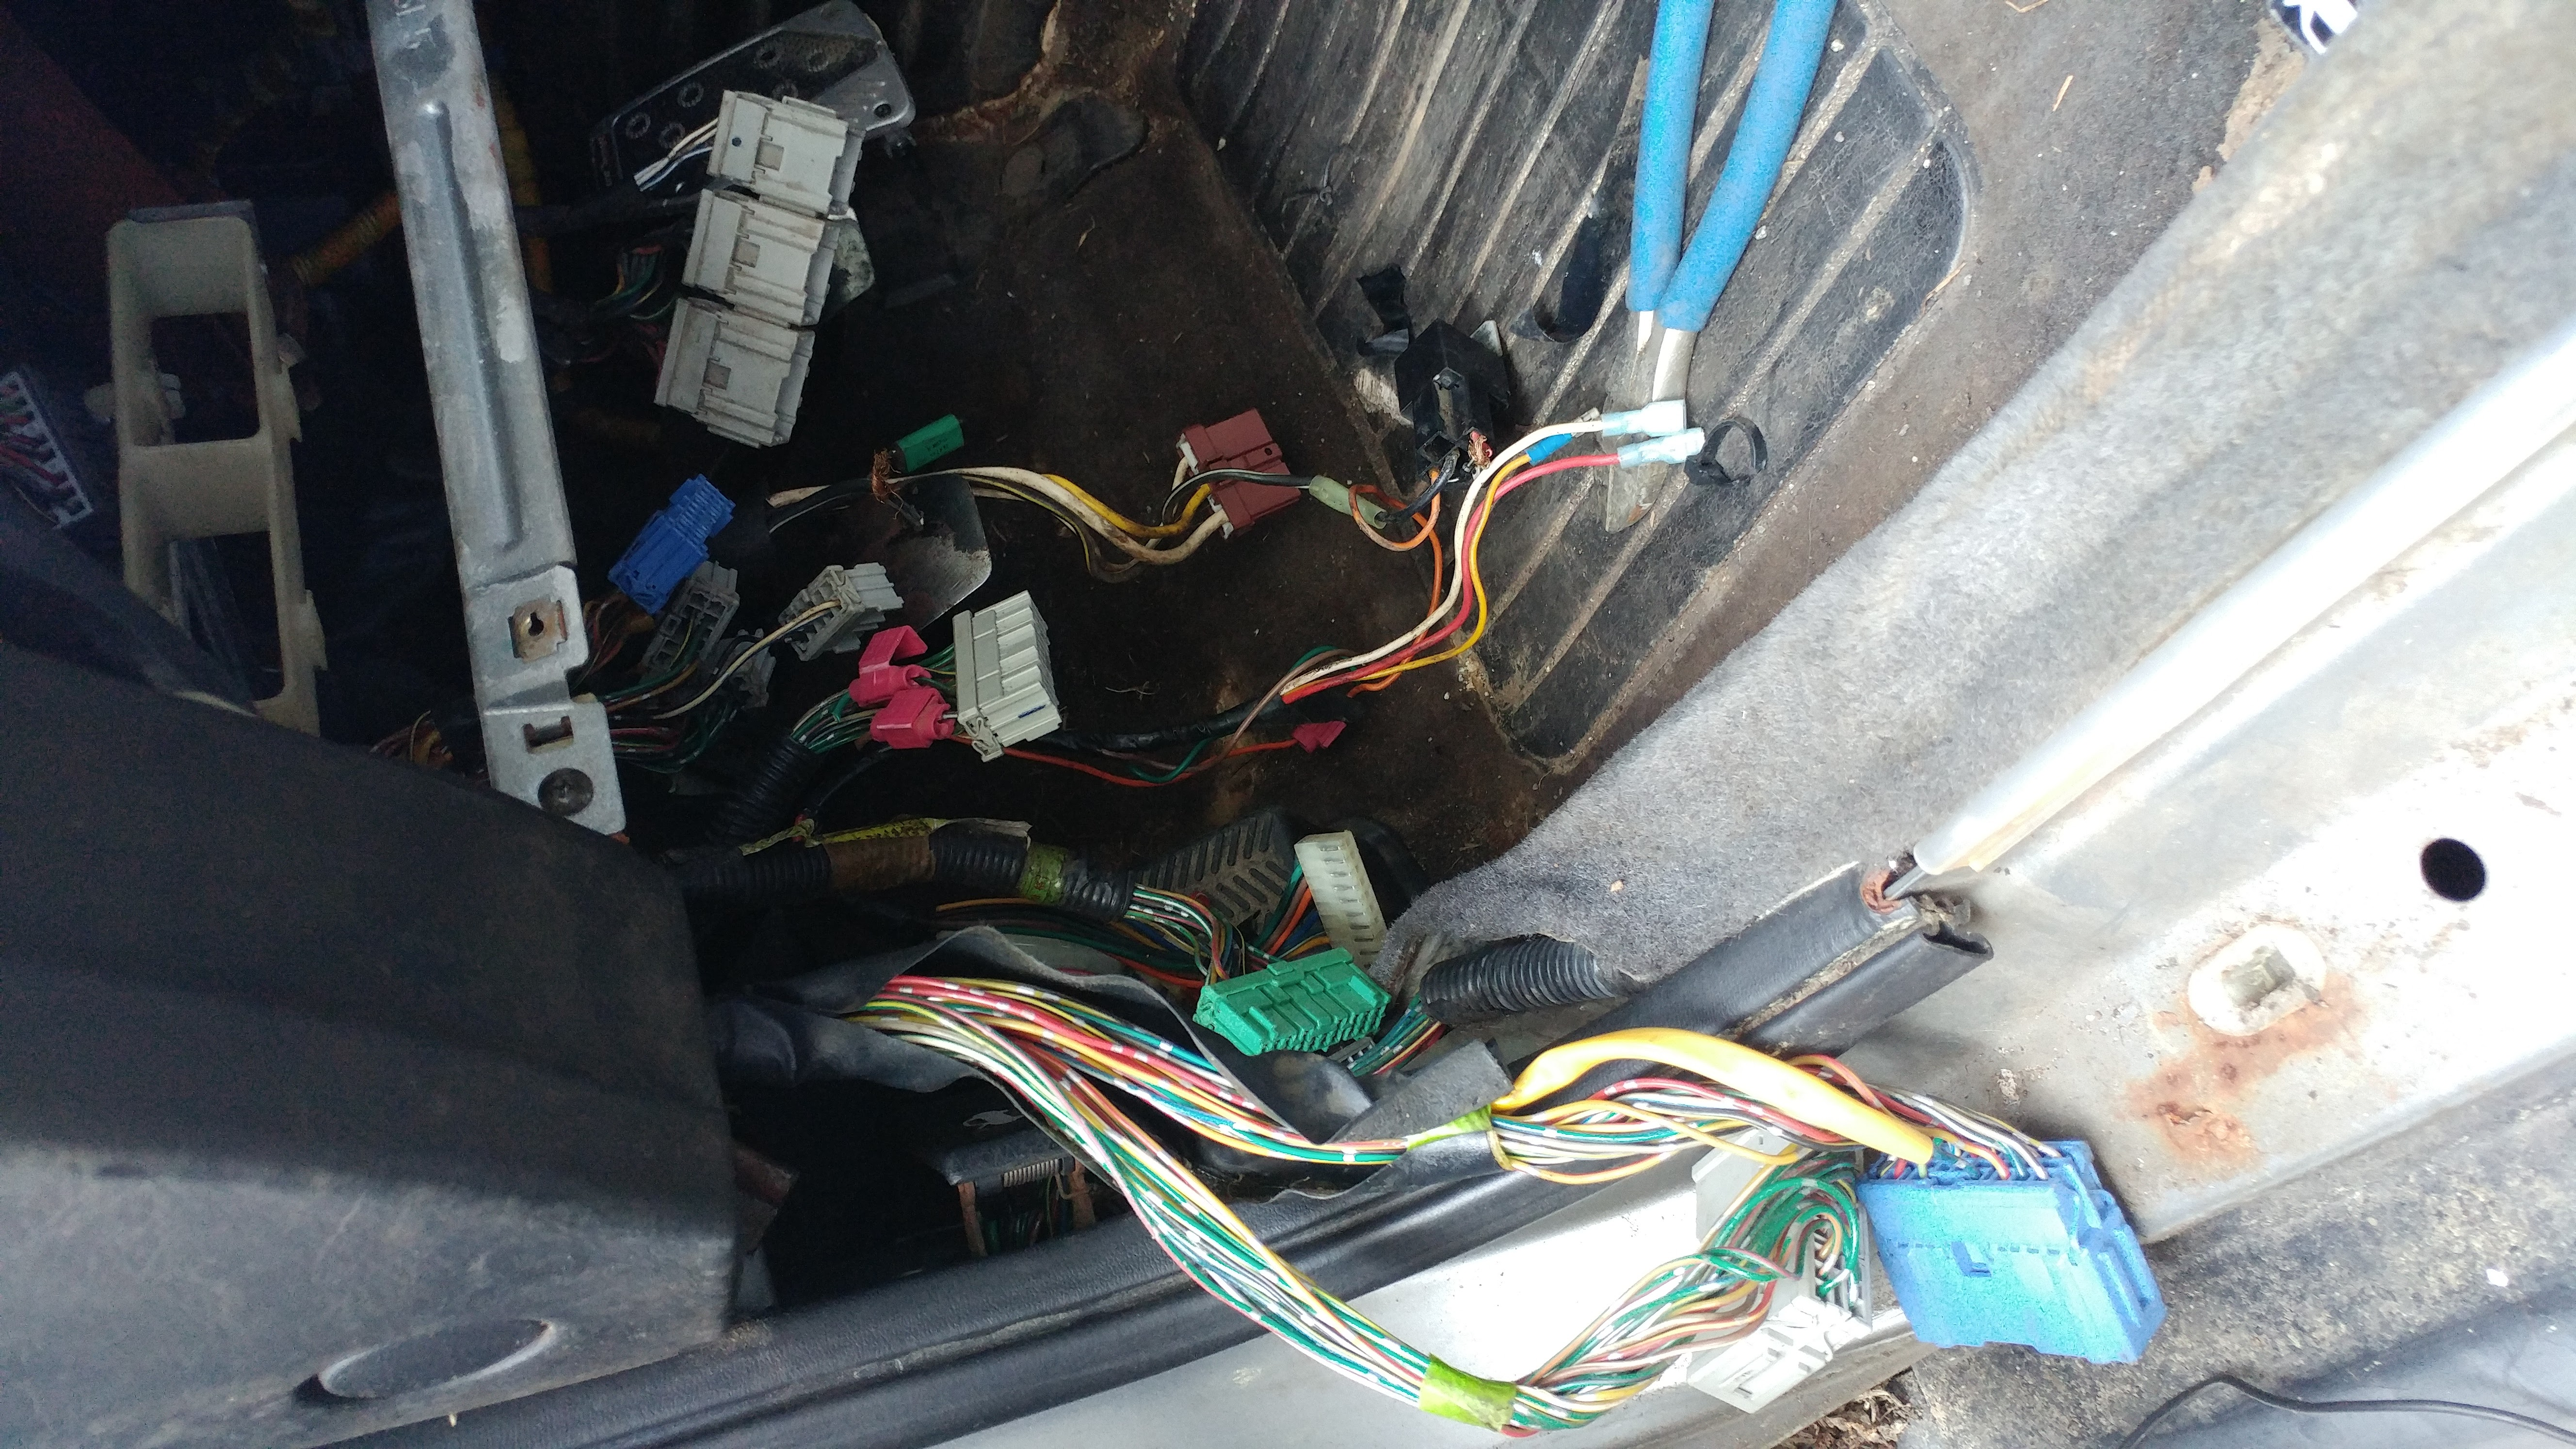 1993 Vigor Gs 5mt Build Acurazine Acura Enthusiast Community Fuse Box I Also Used A 1995 1998 Tl Window Trim Glass Holder To Replace My Broken Piece The Vigors Was Missing Hard Rubber That Lines